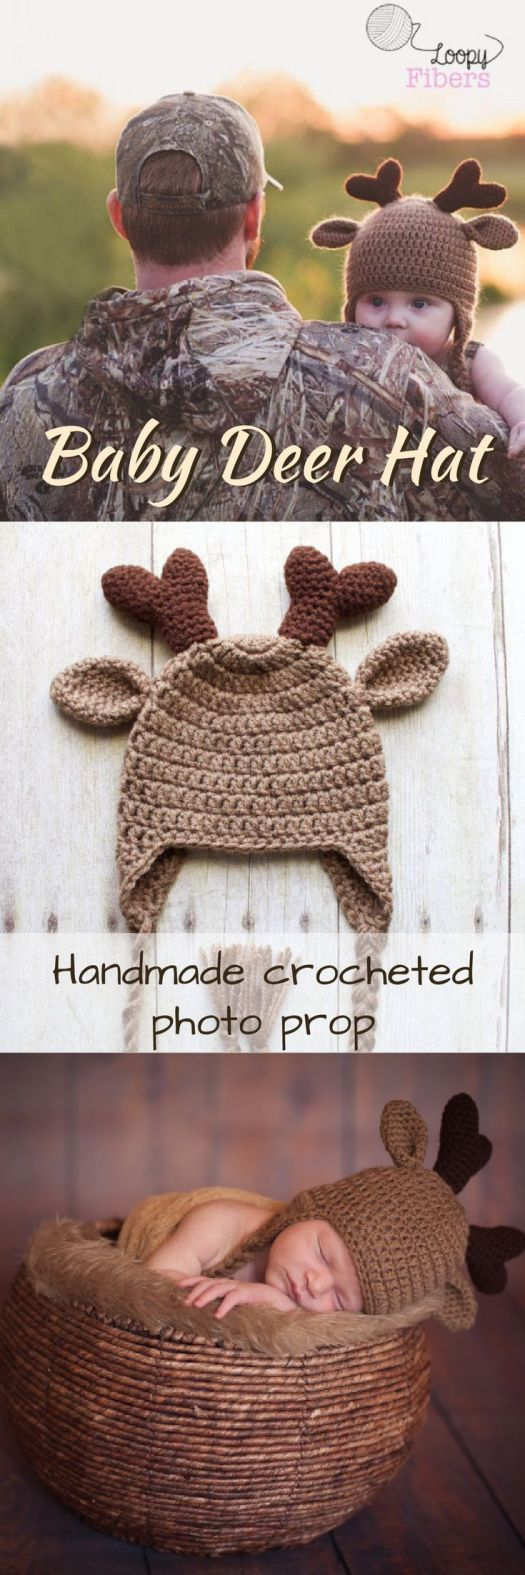 Soooooo cute! Crocheted baby deer hat! Warm and adorable. Perfect for photo shoot, but also great for just staying warm in the winter. Now I just need a pattern.. Check out all of craft evangelist's baby pattern finds!